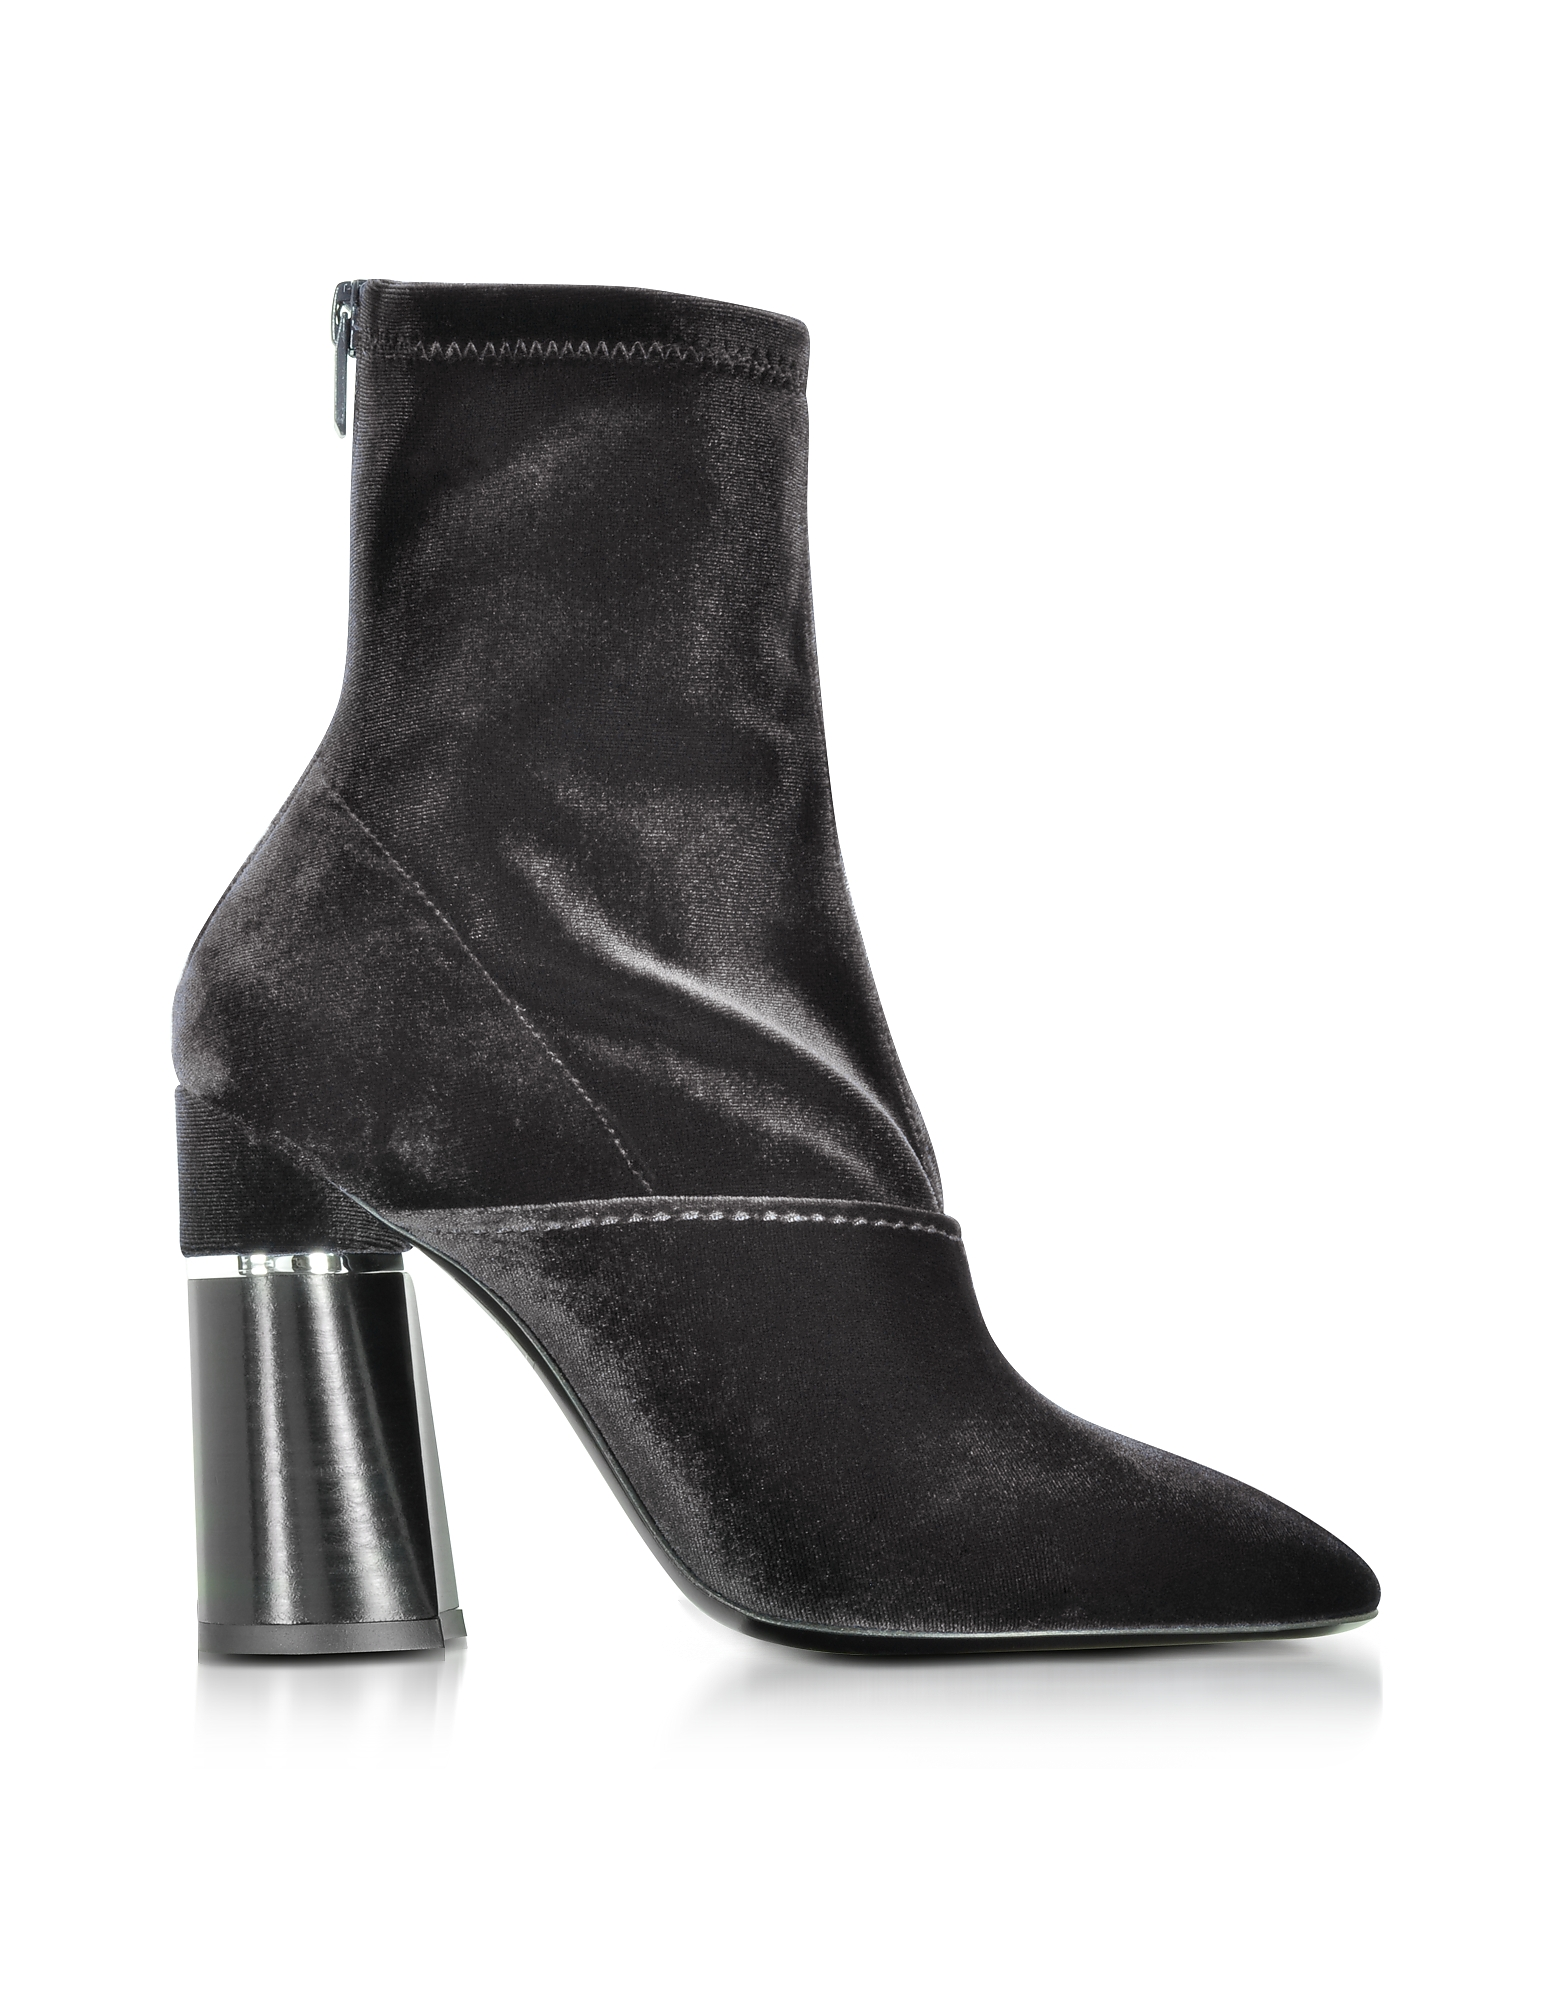 3.1 Phillip Lim Kyoto Black Velvet Stretch High Heel Ankle Boots